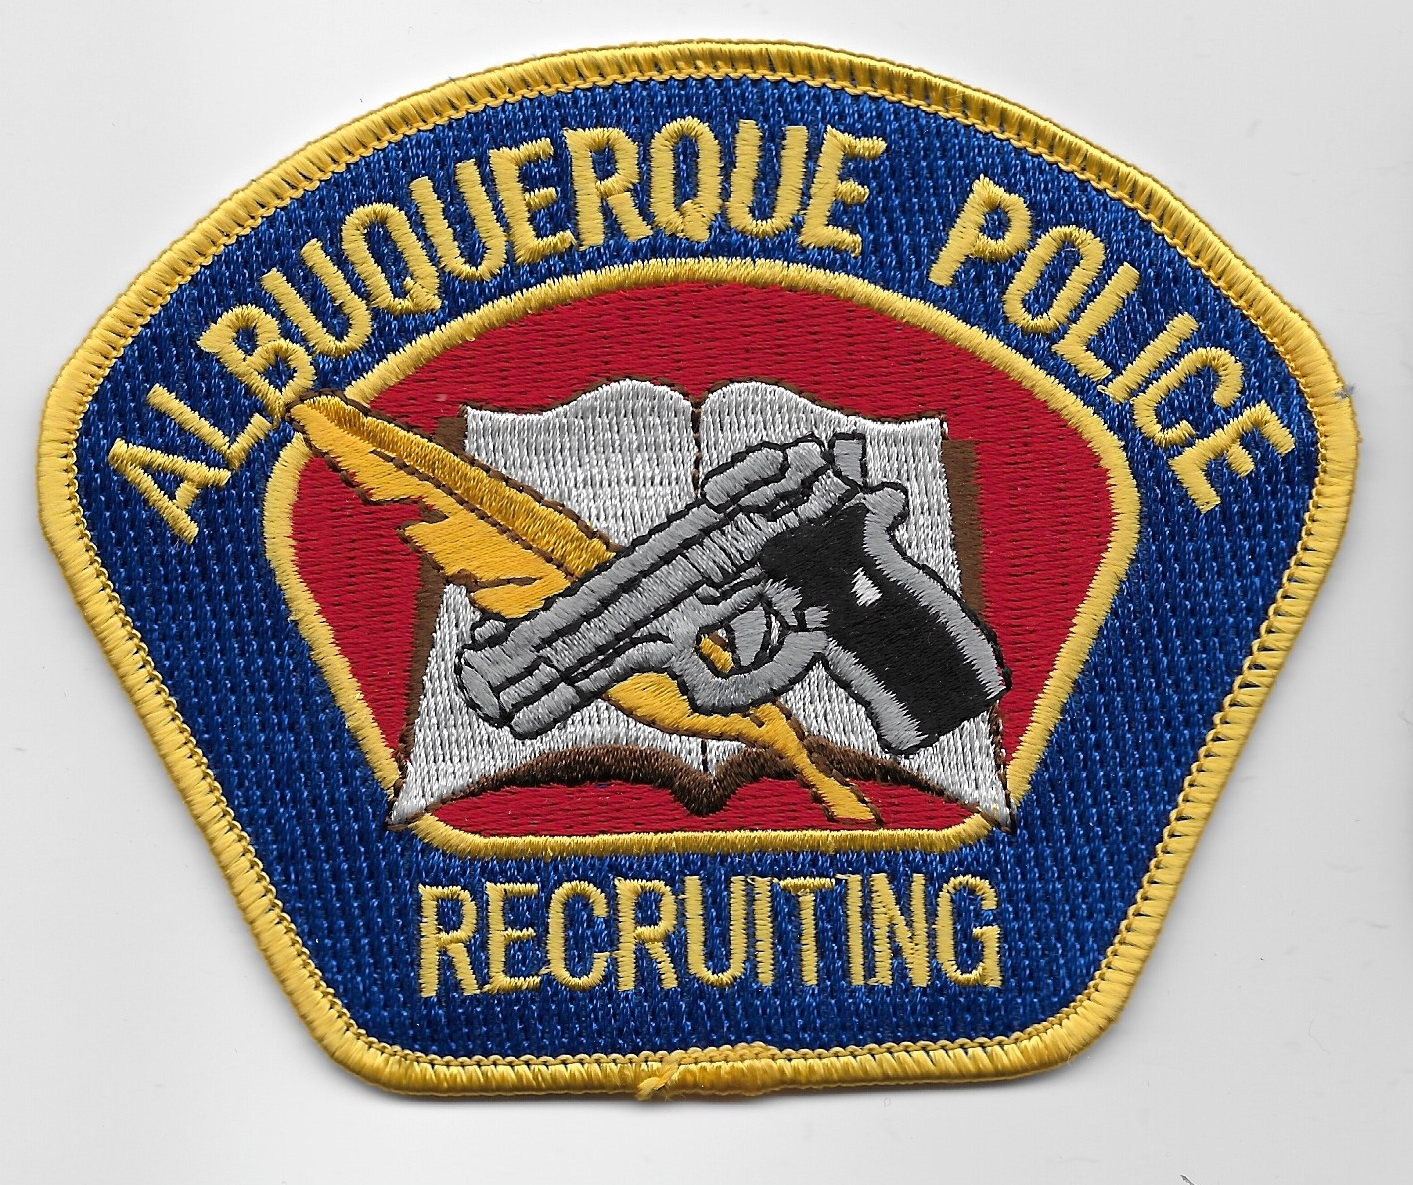 Albuquerque Police Recruiting NM